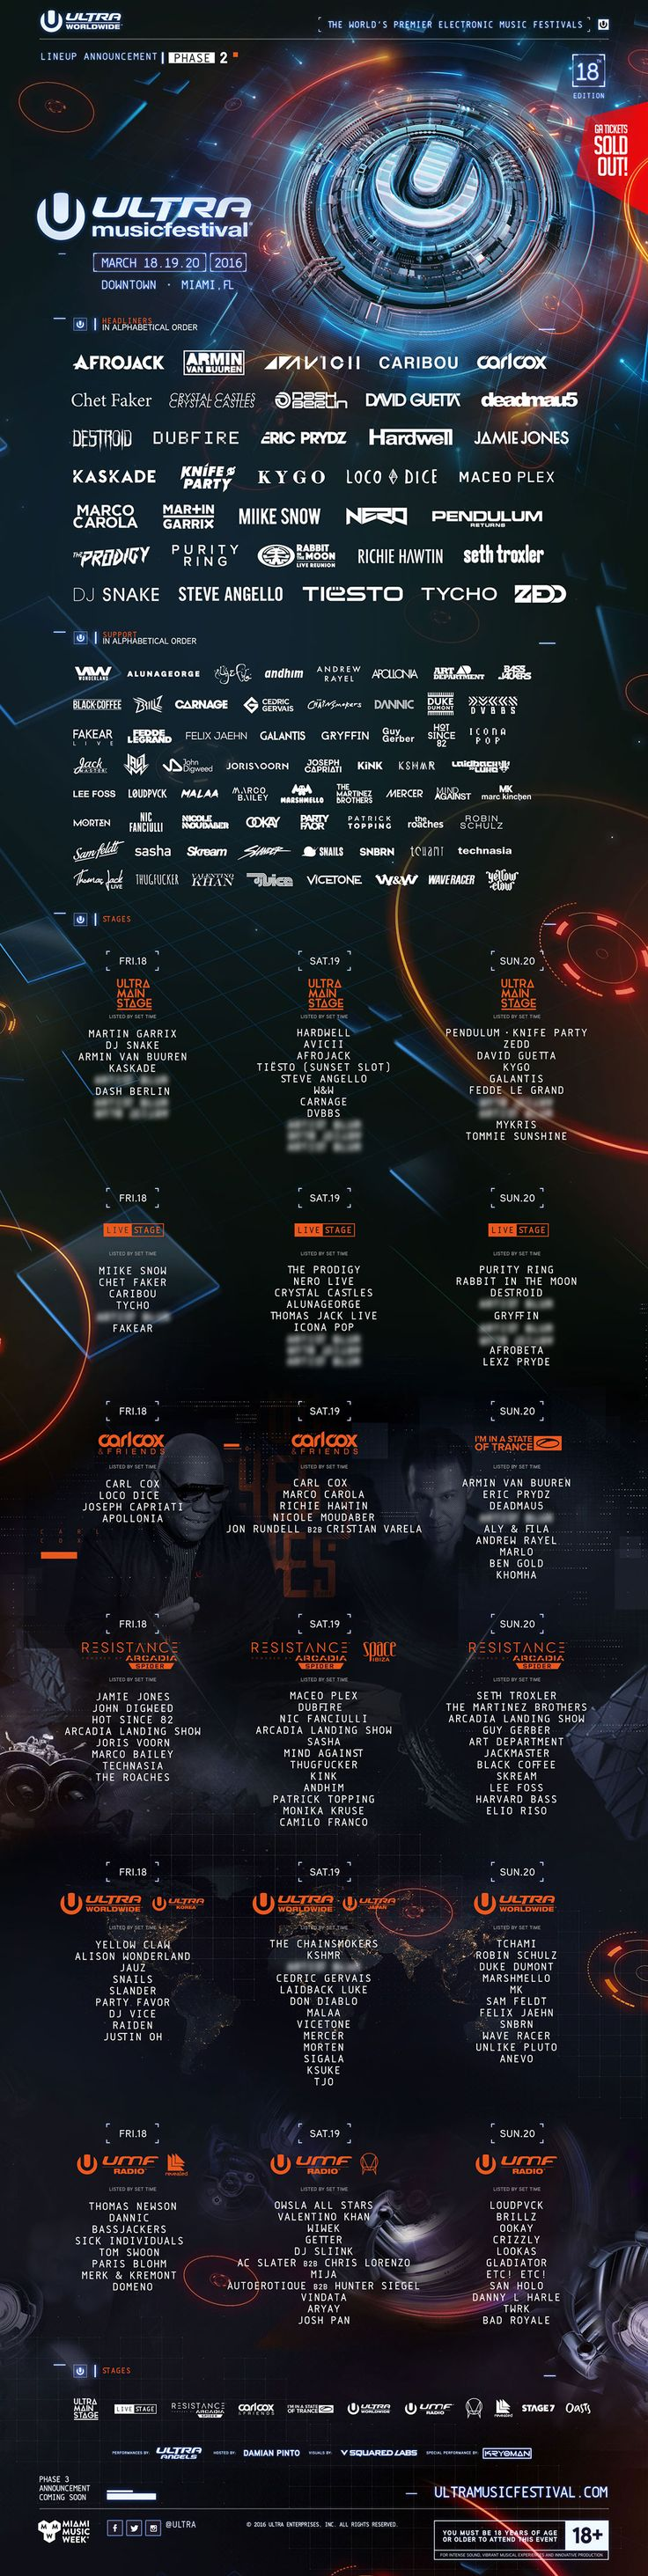 Ultra Music Festival, Miami, March 18-20, 2016. Who's performing: Avicii, Carl Cox, Eric Prydz, The Prodigy, DJ Teisto and more